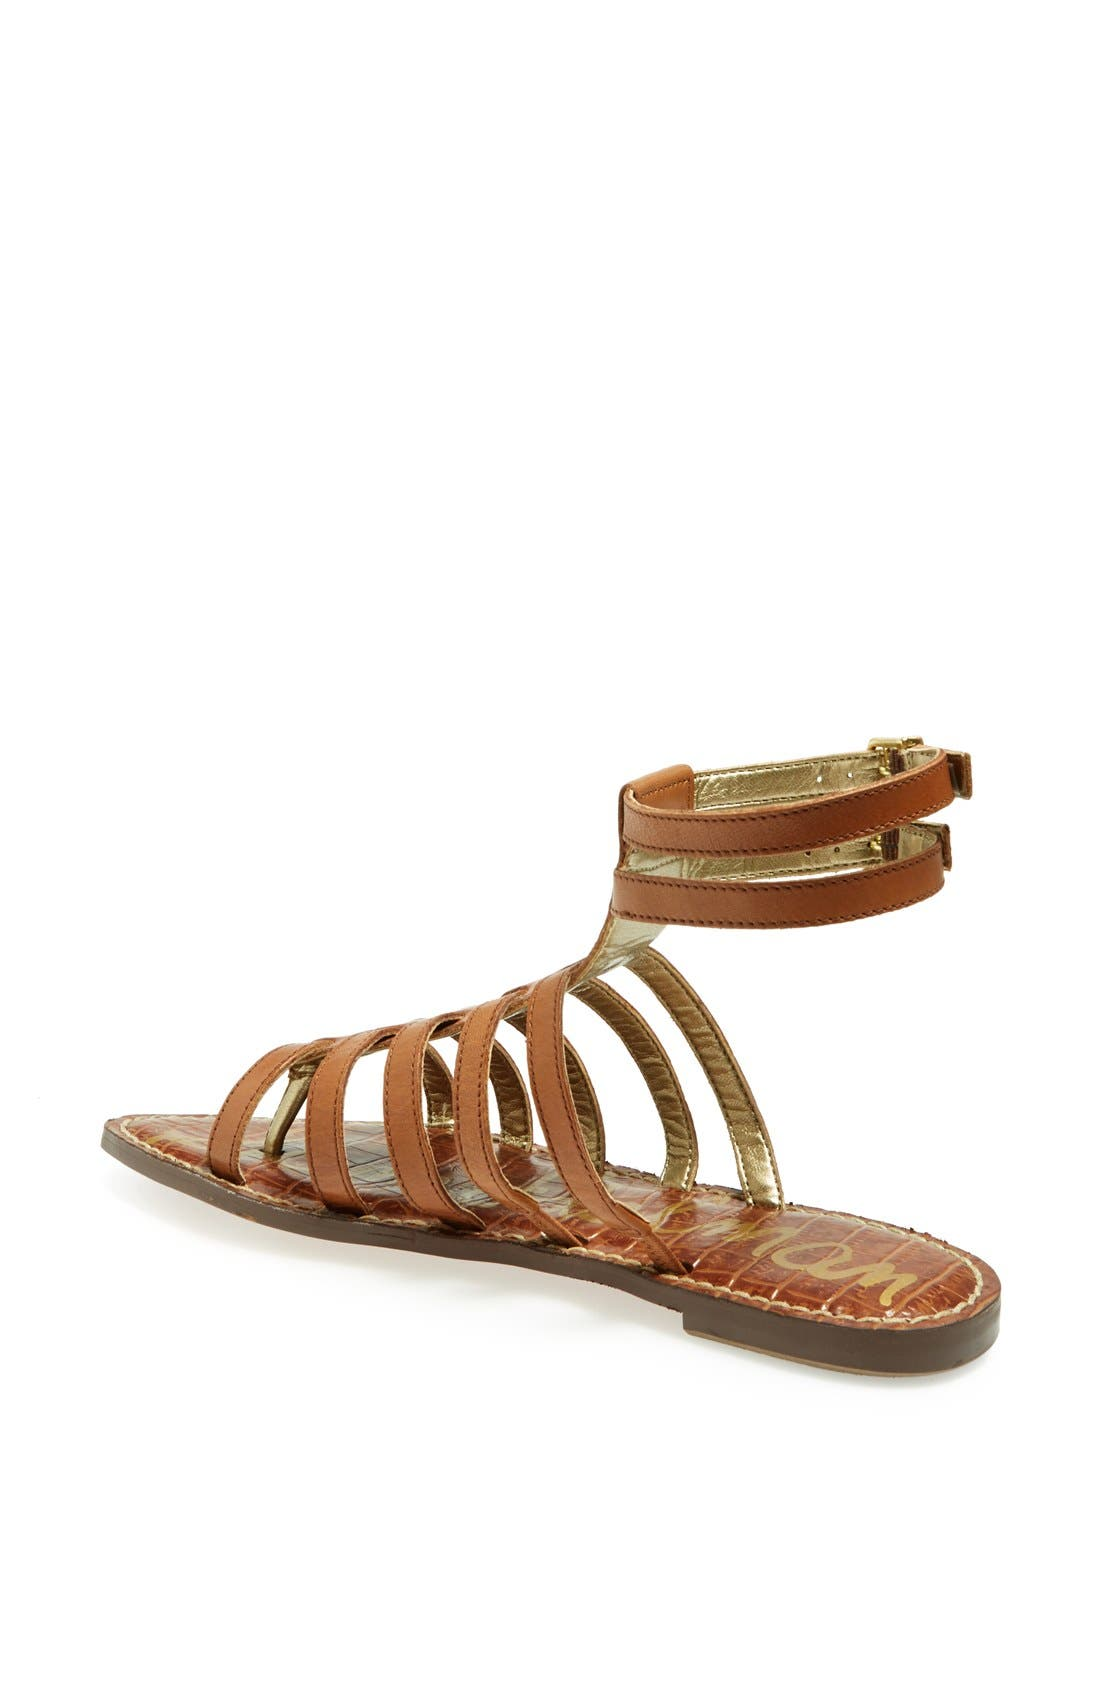 'Gilda' Sandal,                             Alternate thumbnail 3, color,                             SADDLE LEATHER